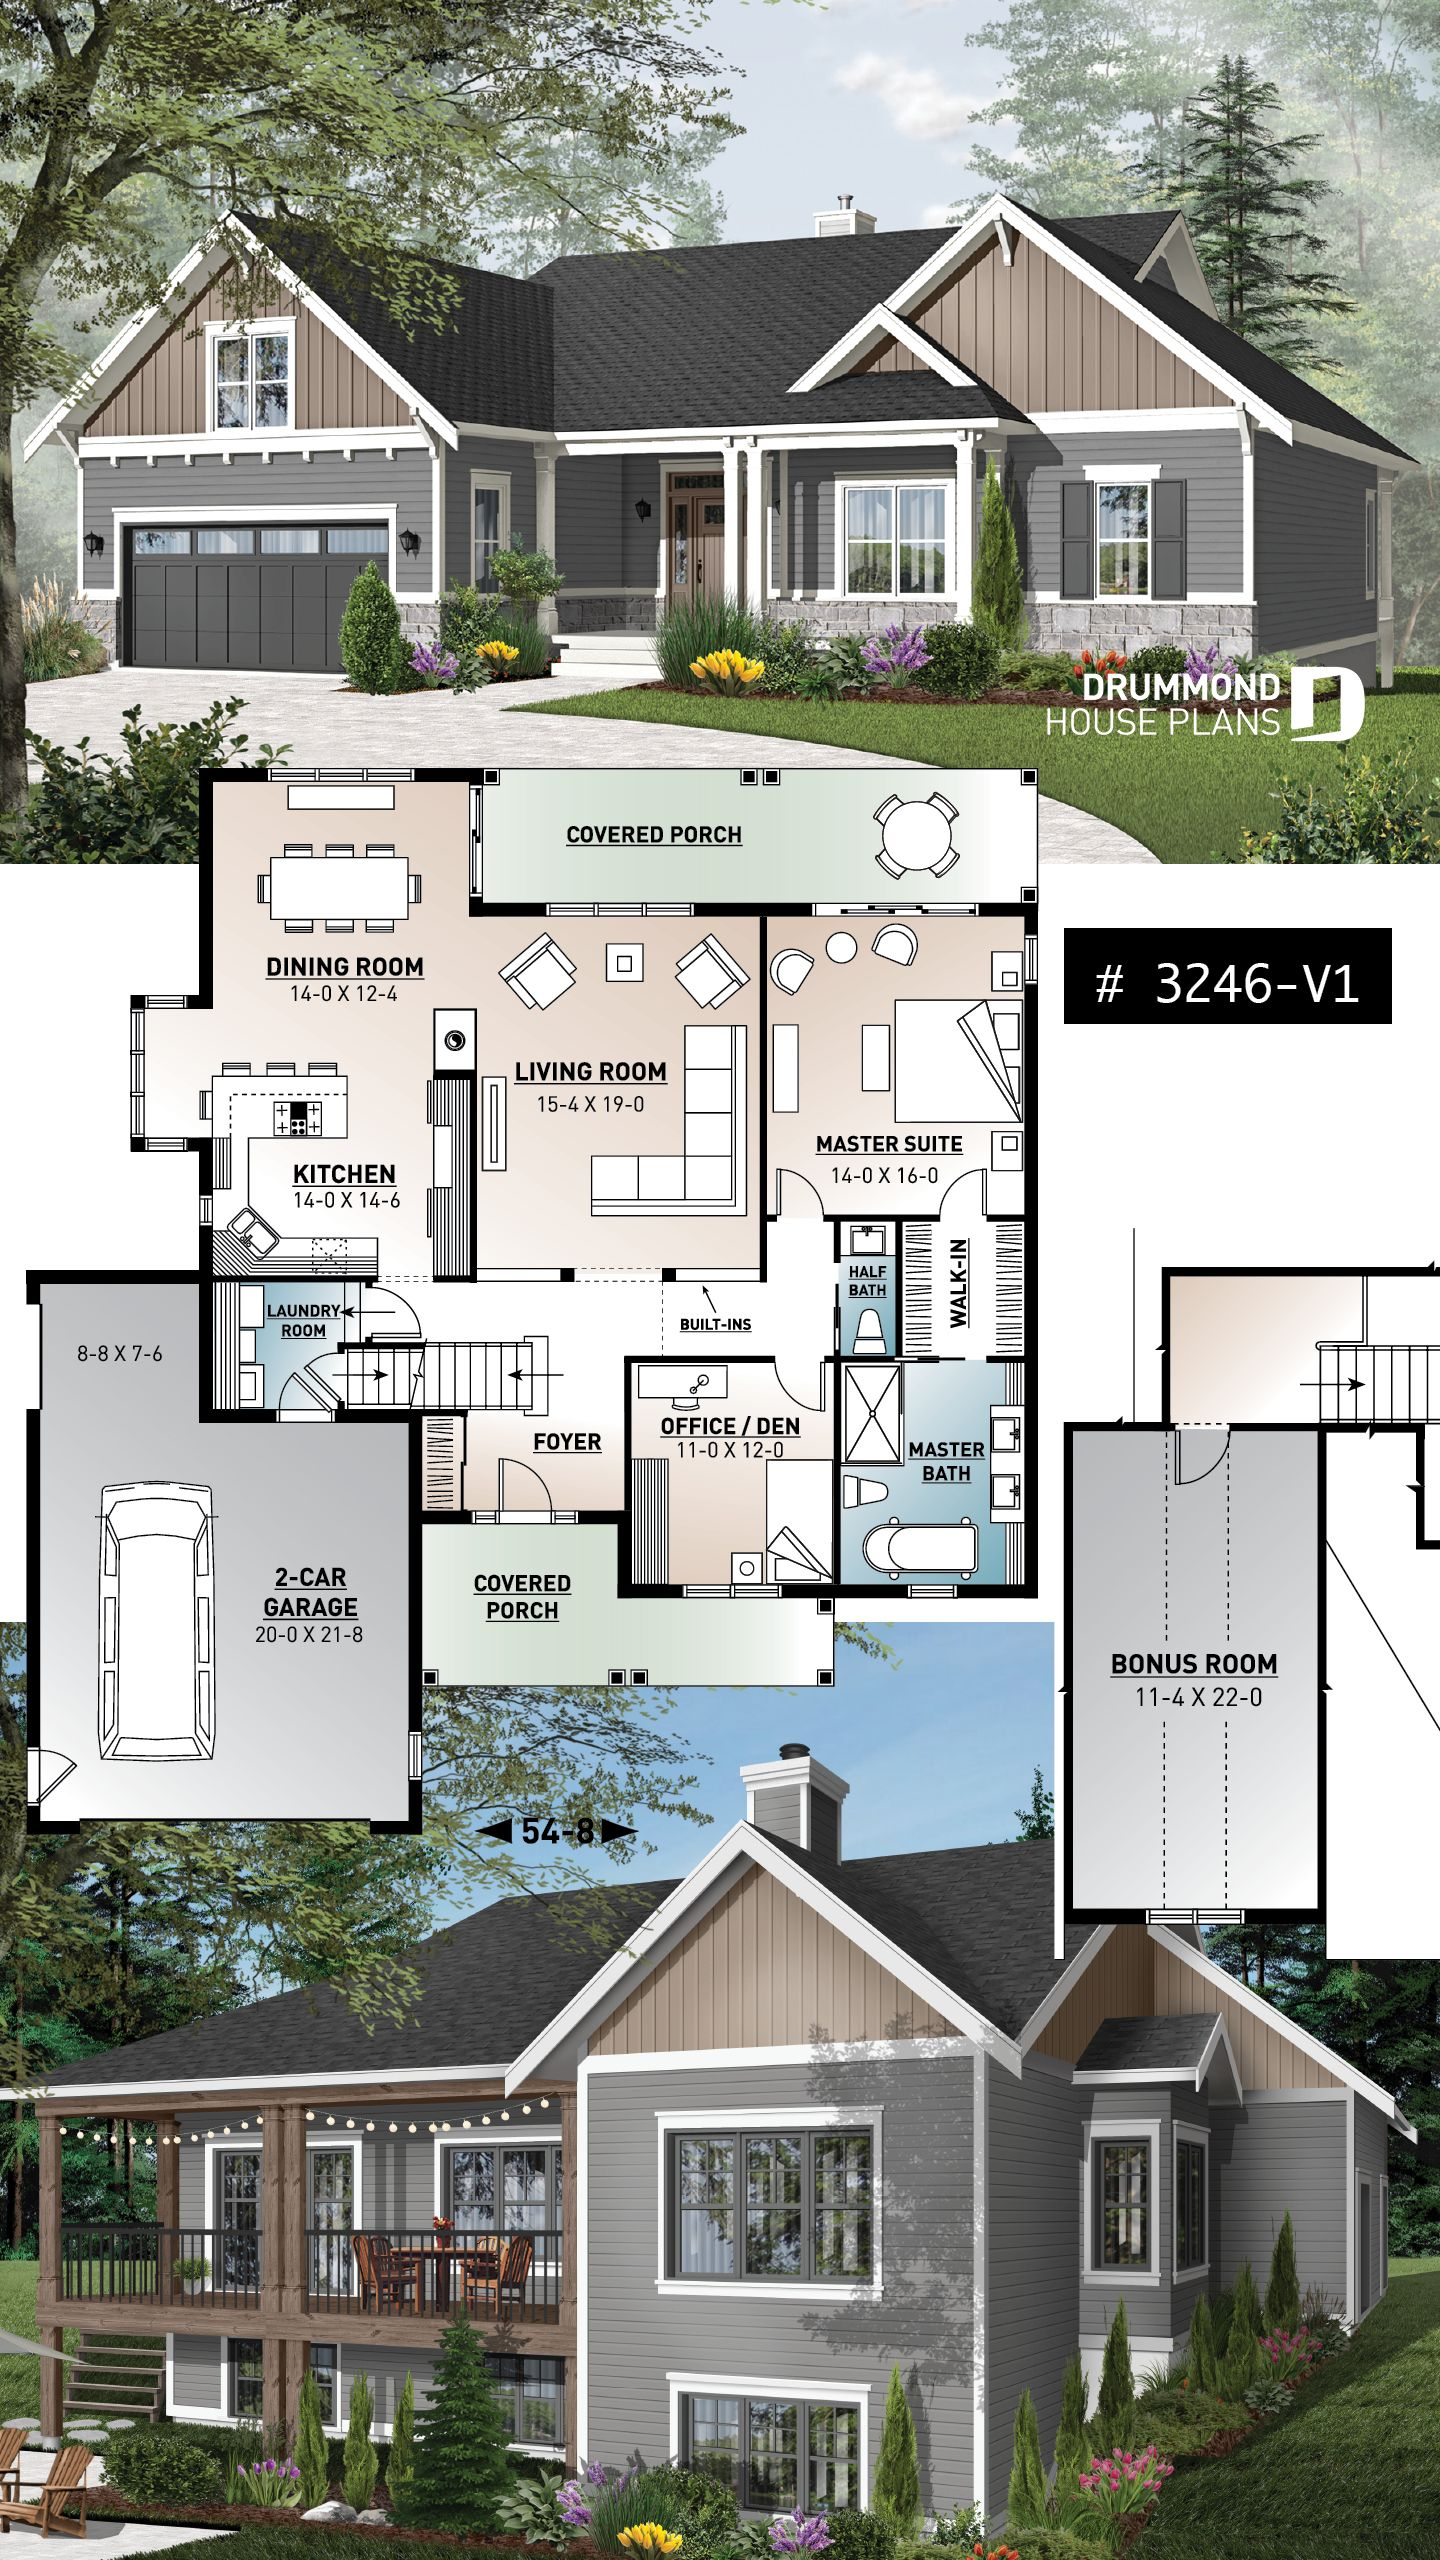 walkout basement cost on discover the plan 3246 v1 aldergrove which will please you for its 5 4 bedrooms and for its country styles craftsman house plans house plans farmhouse bungalow house plans craftsman house plans